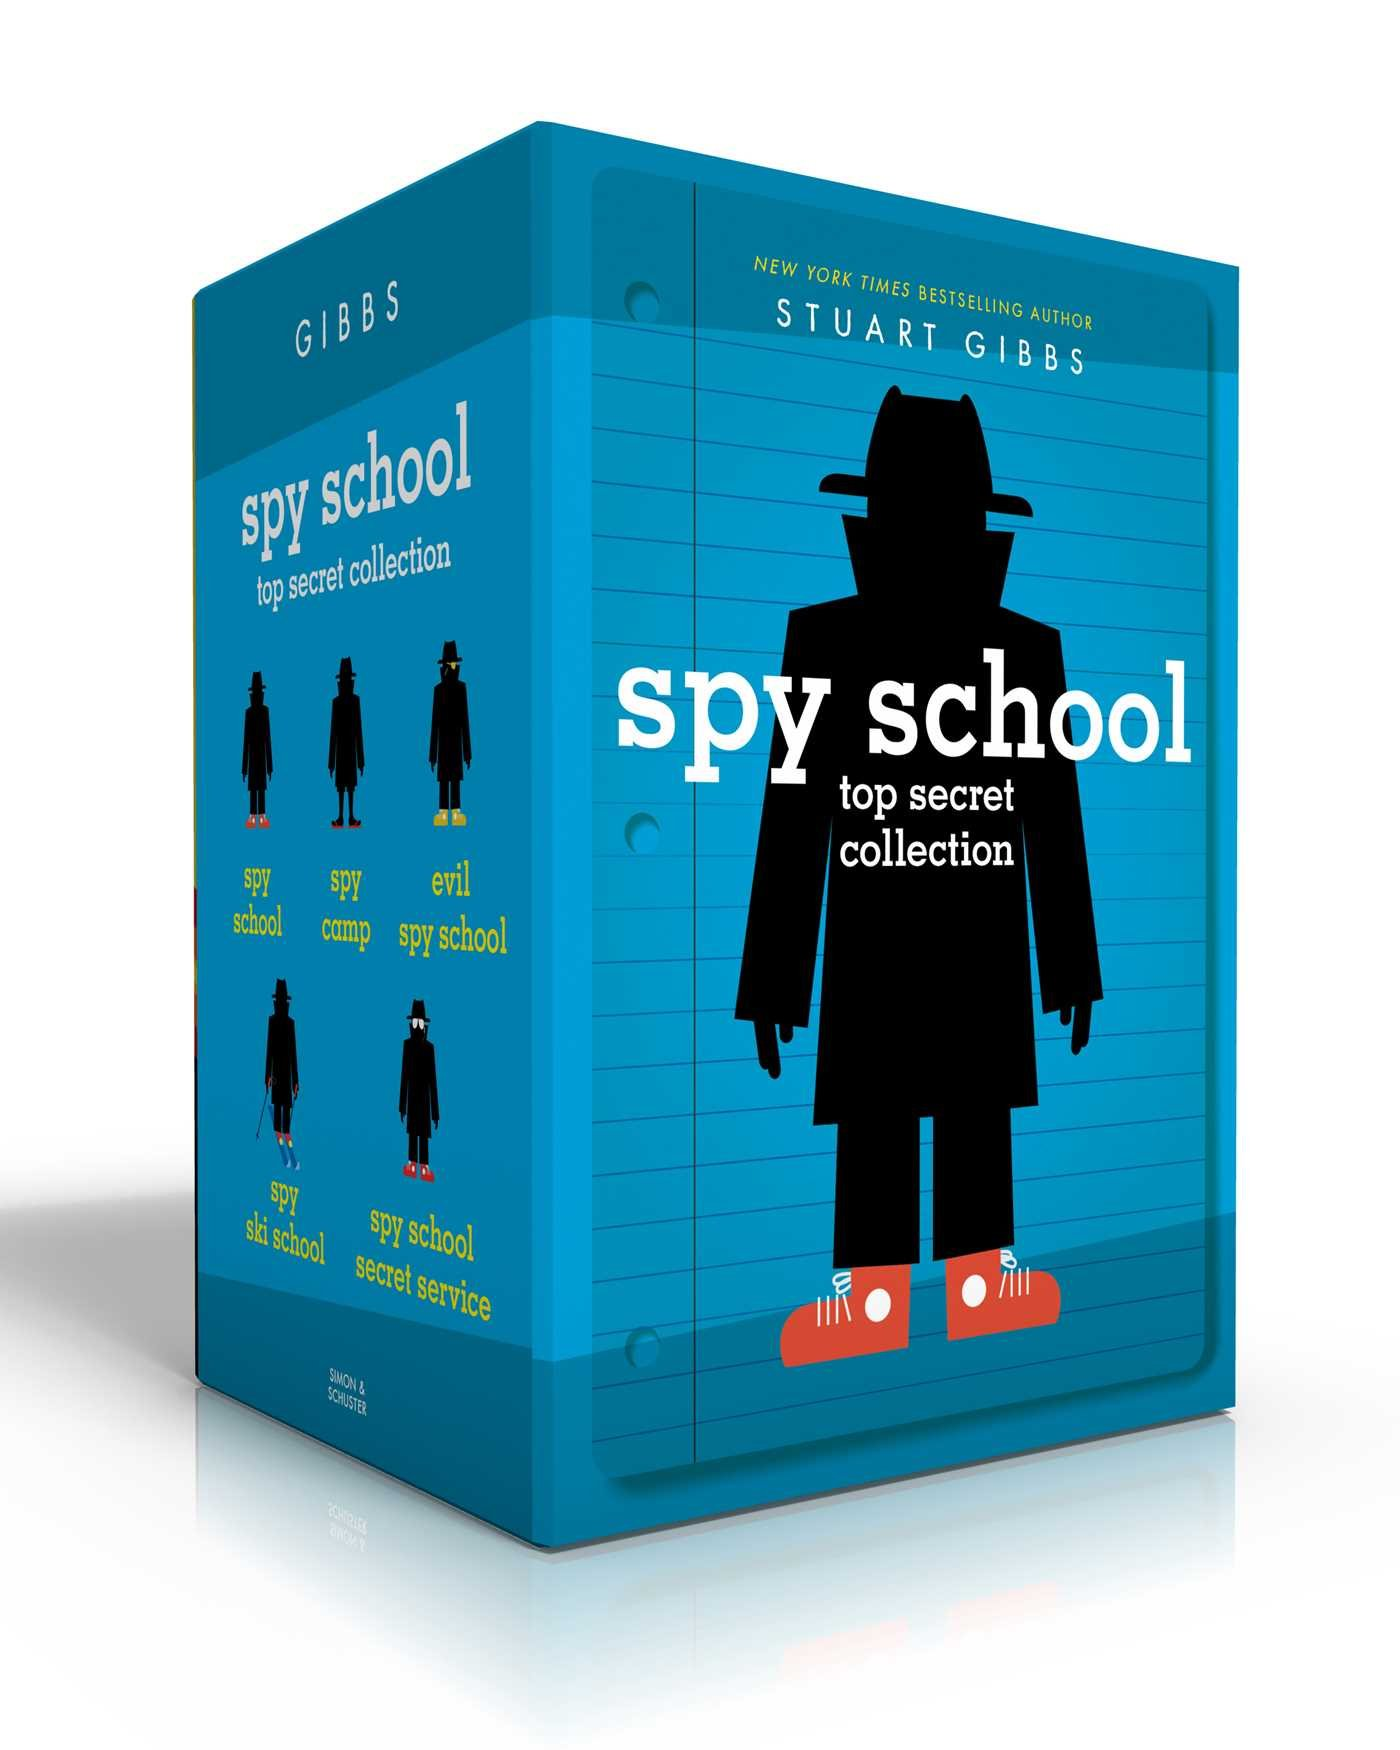 Spy School Top Secret Collection: Spy School; Spy Camp; Evil Spy School; Spy Ski School; Spy School Secret Service by Simon & Schuster Books for Young Readers